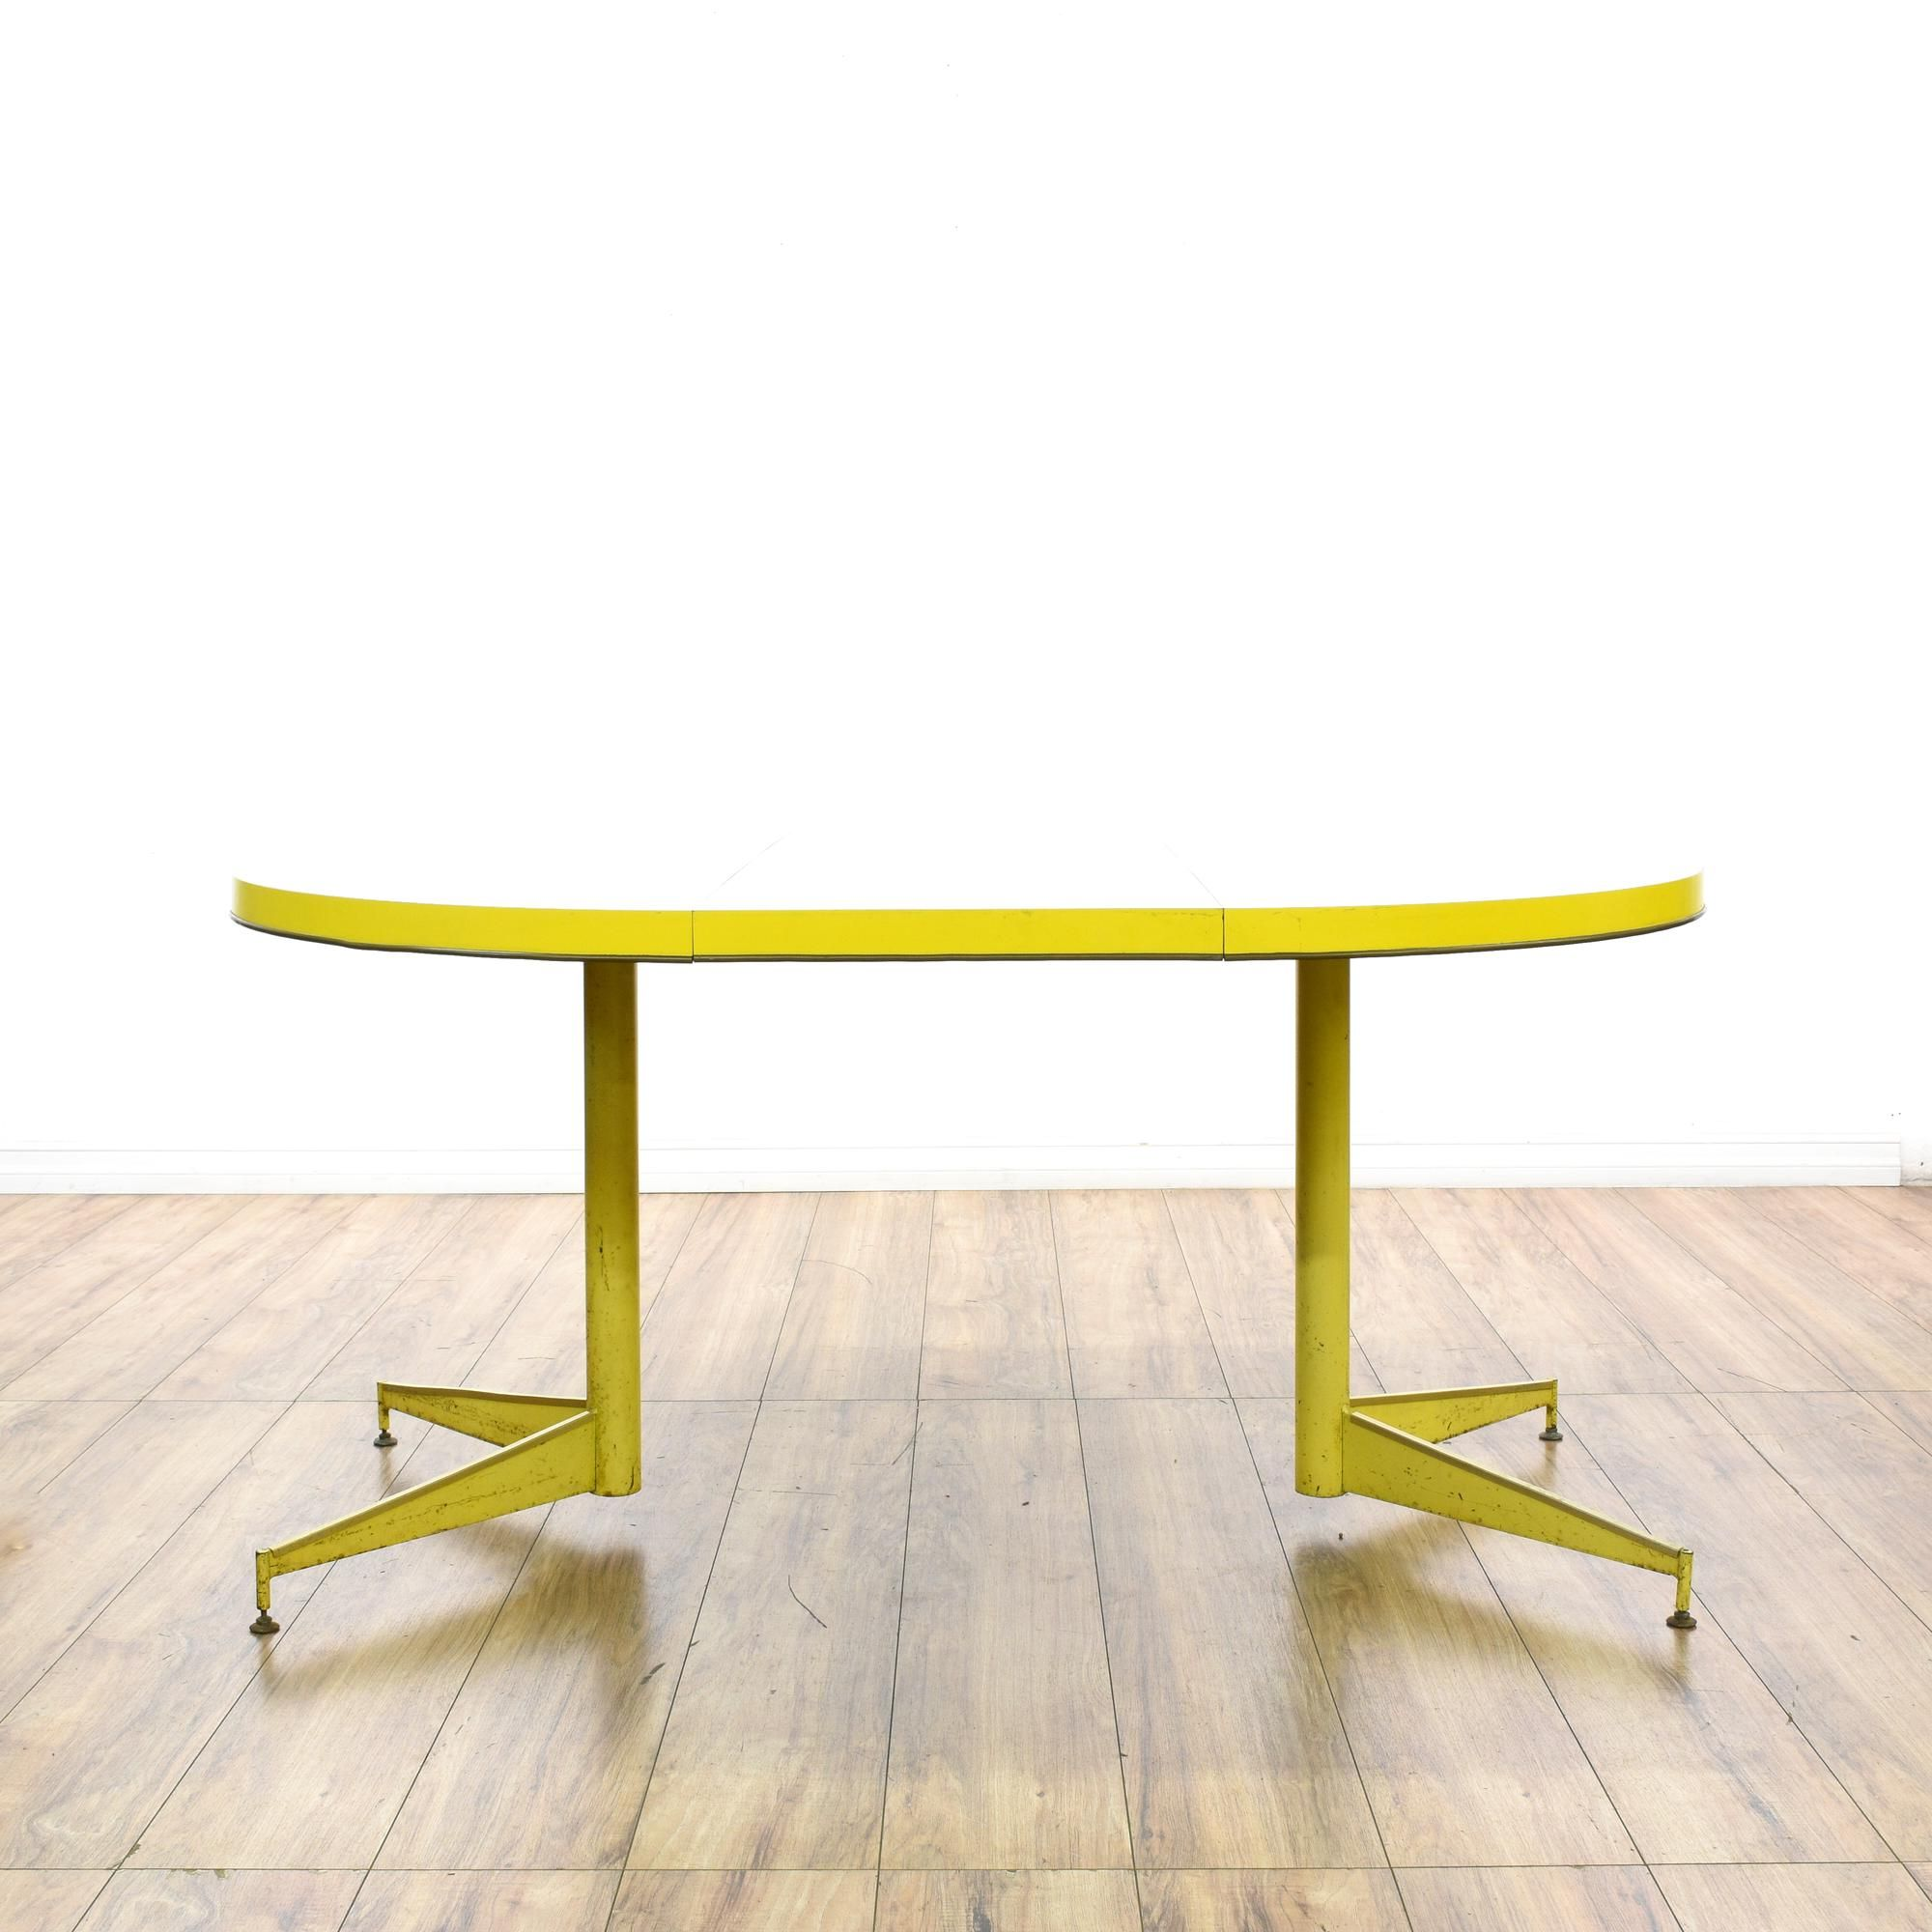 This Retro Dining Table Is Featured In A Durable Metal With A Vibrant  Yellow Patina Finish. This Mid Century Modern Dinette Table Has An Oval  White Laminate ...